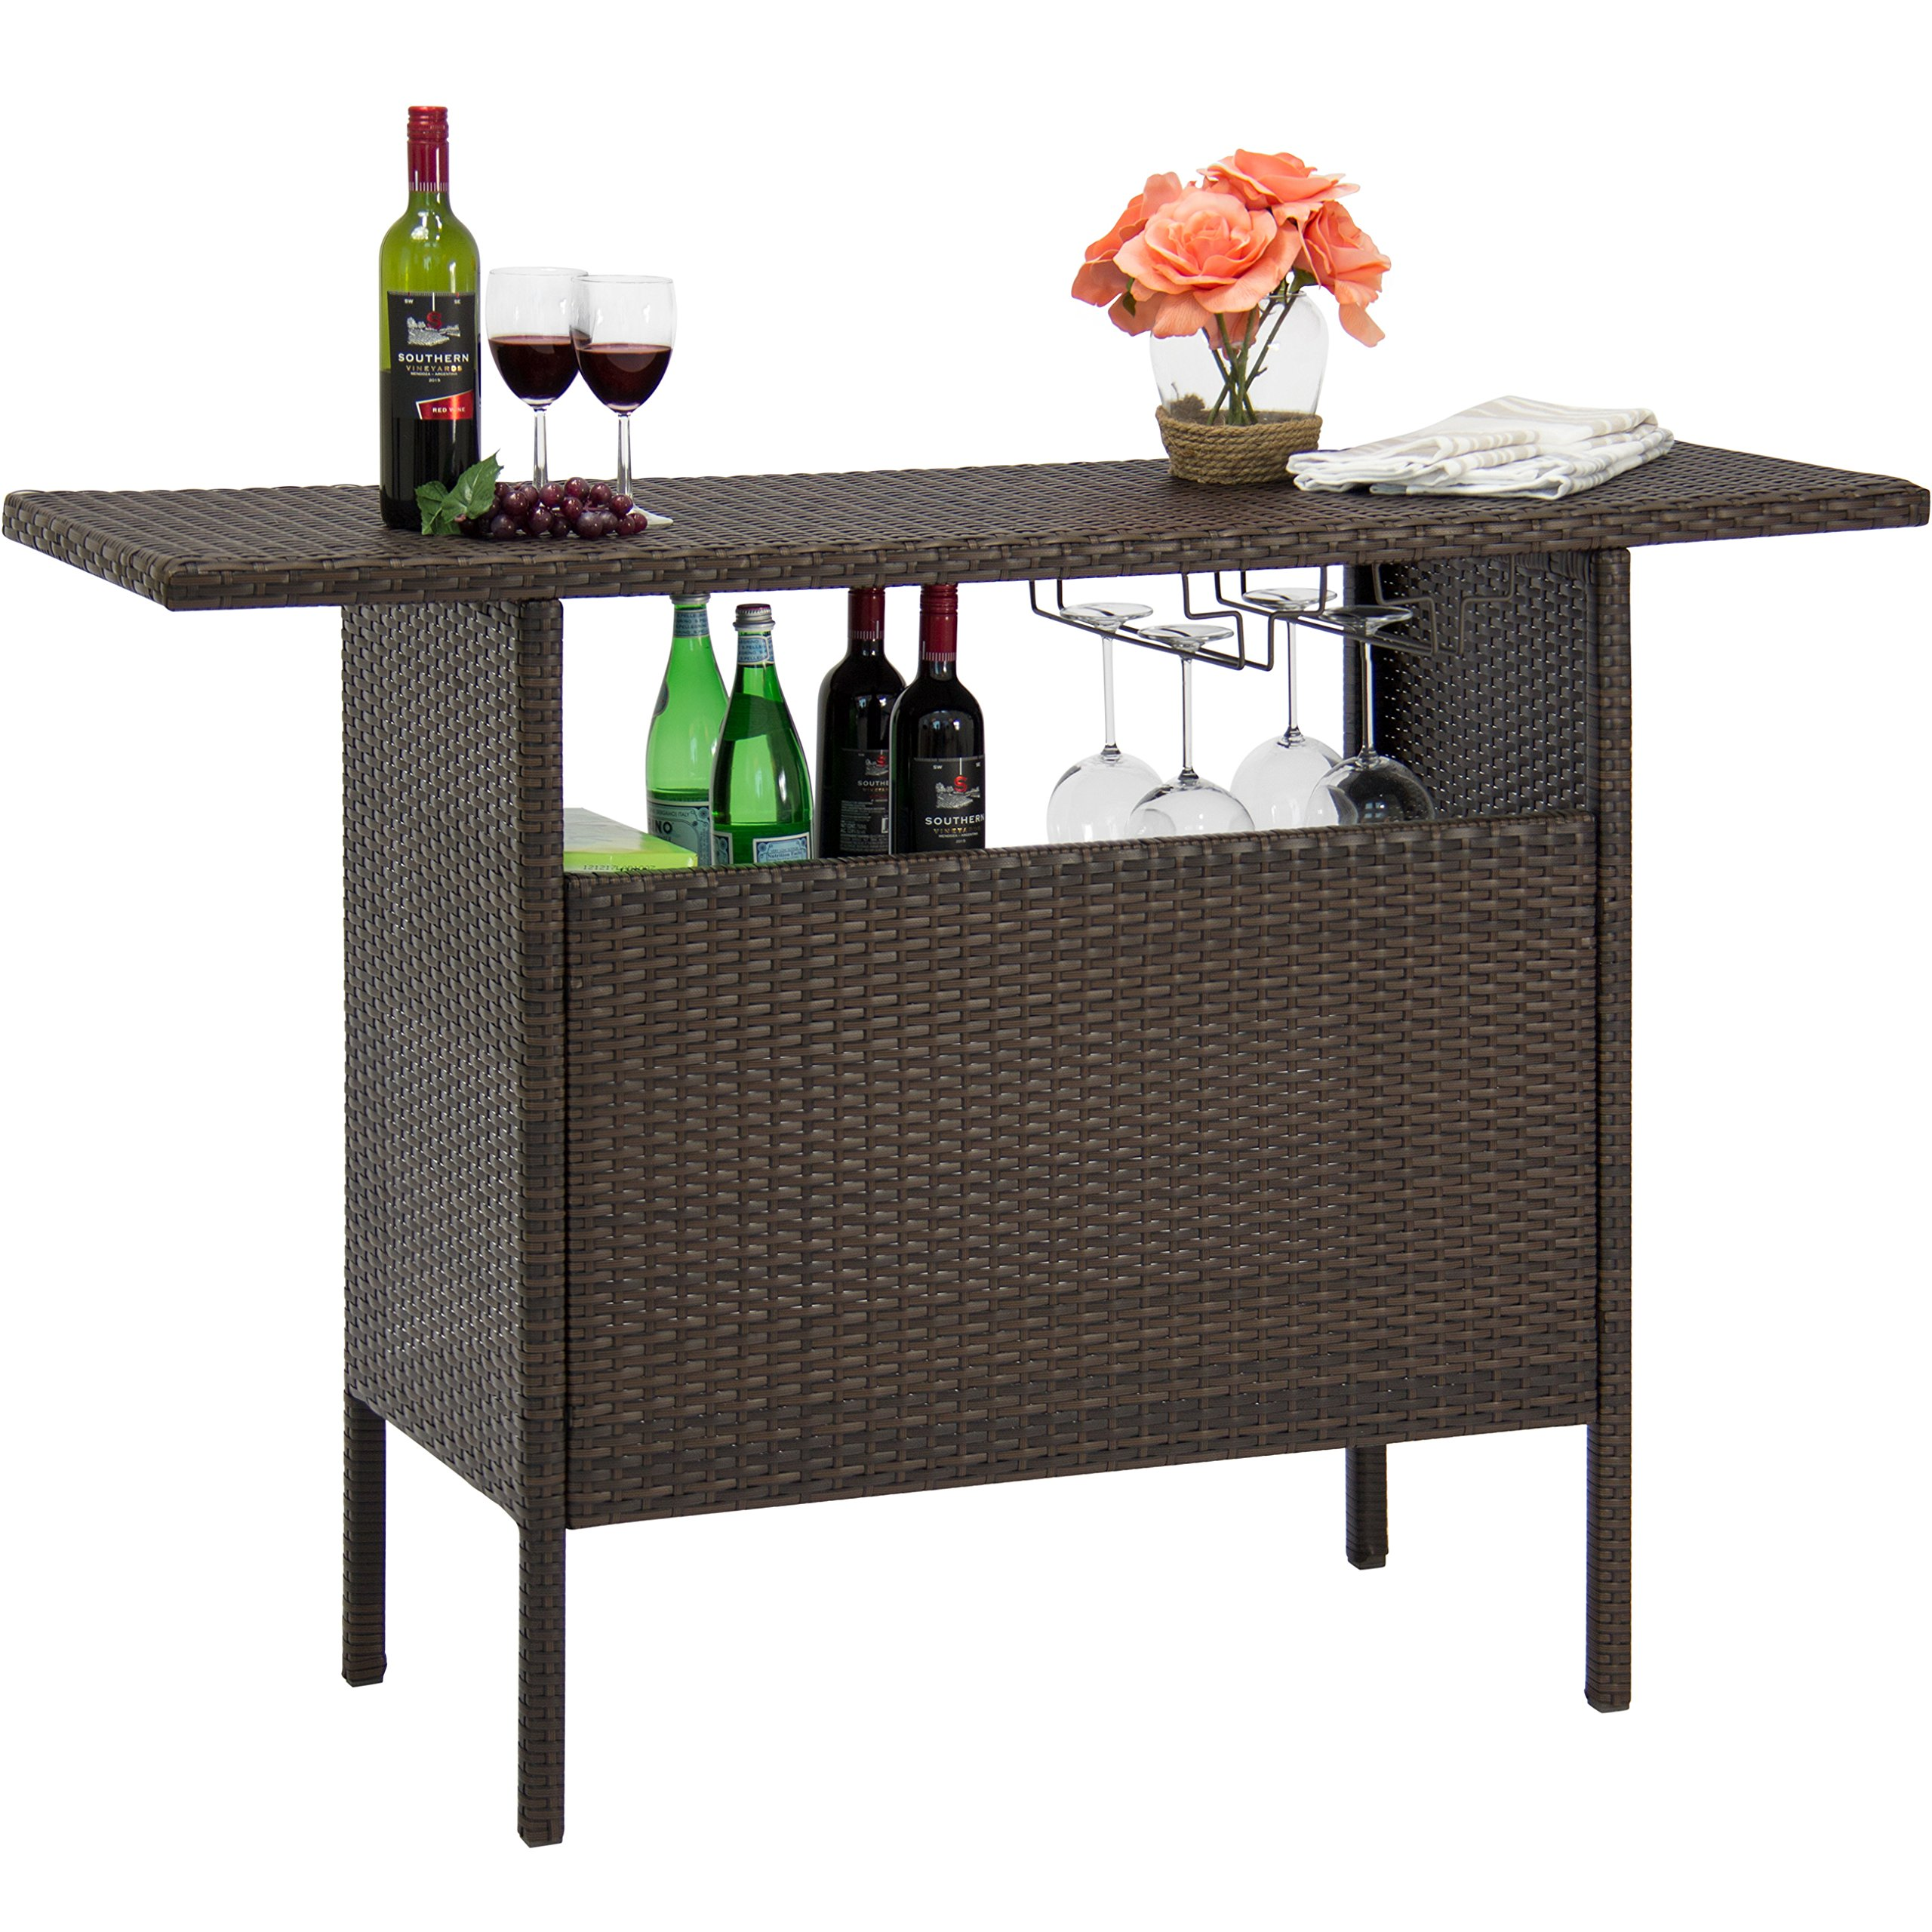 Best Choice Products Outdoor Patio Wicker Bar Counter Table- Brown by Best Choice Products